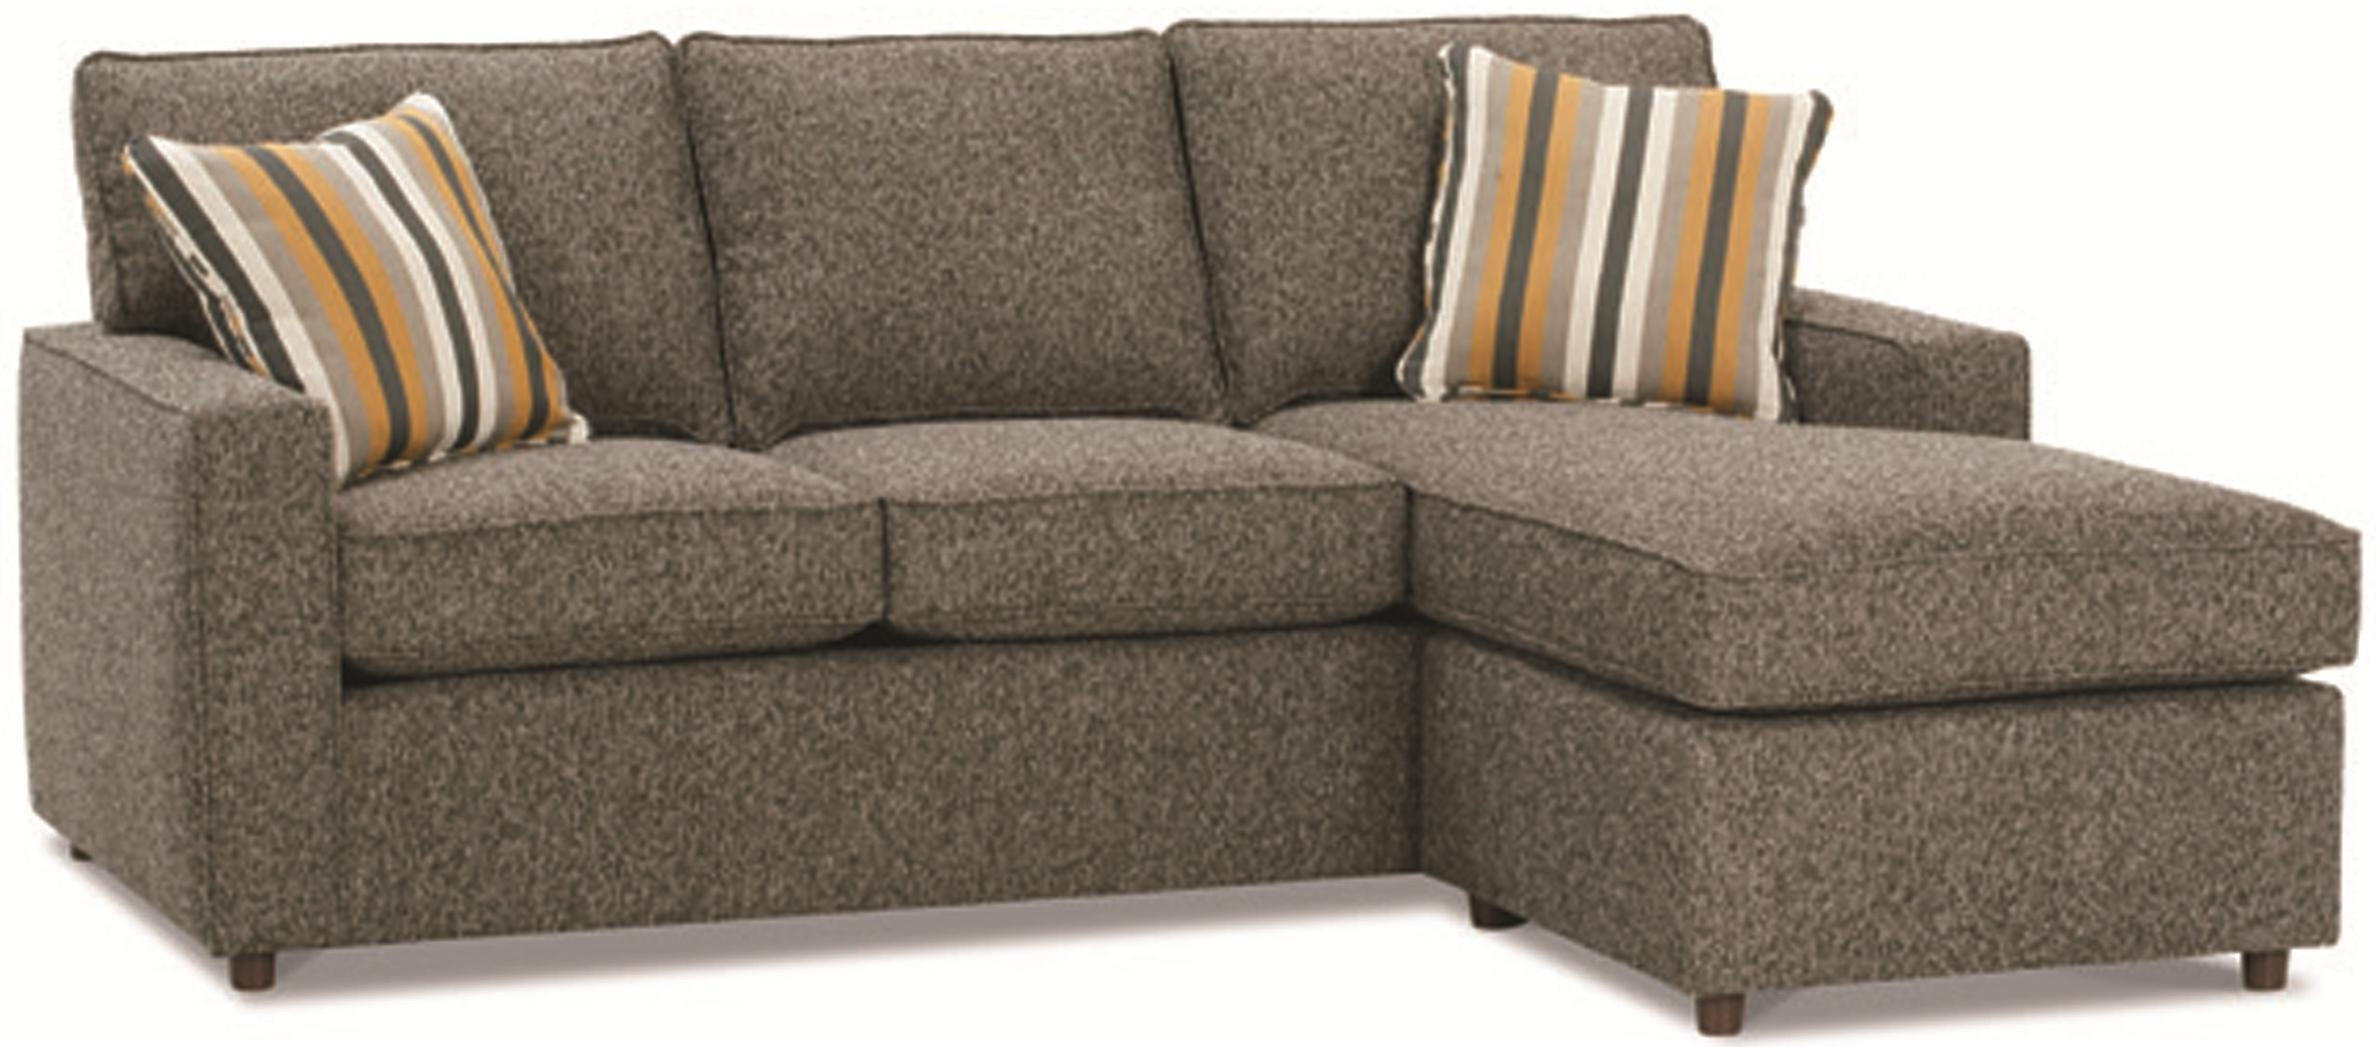 Rowe Monaco Contemporary Sofa With Reversible Chaise Ottoman For Rowe Sectional Sofas (Image 11 of 20)